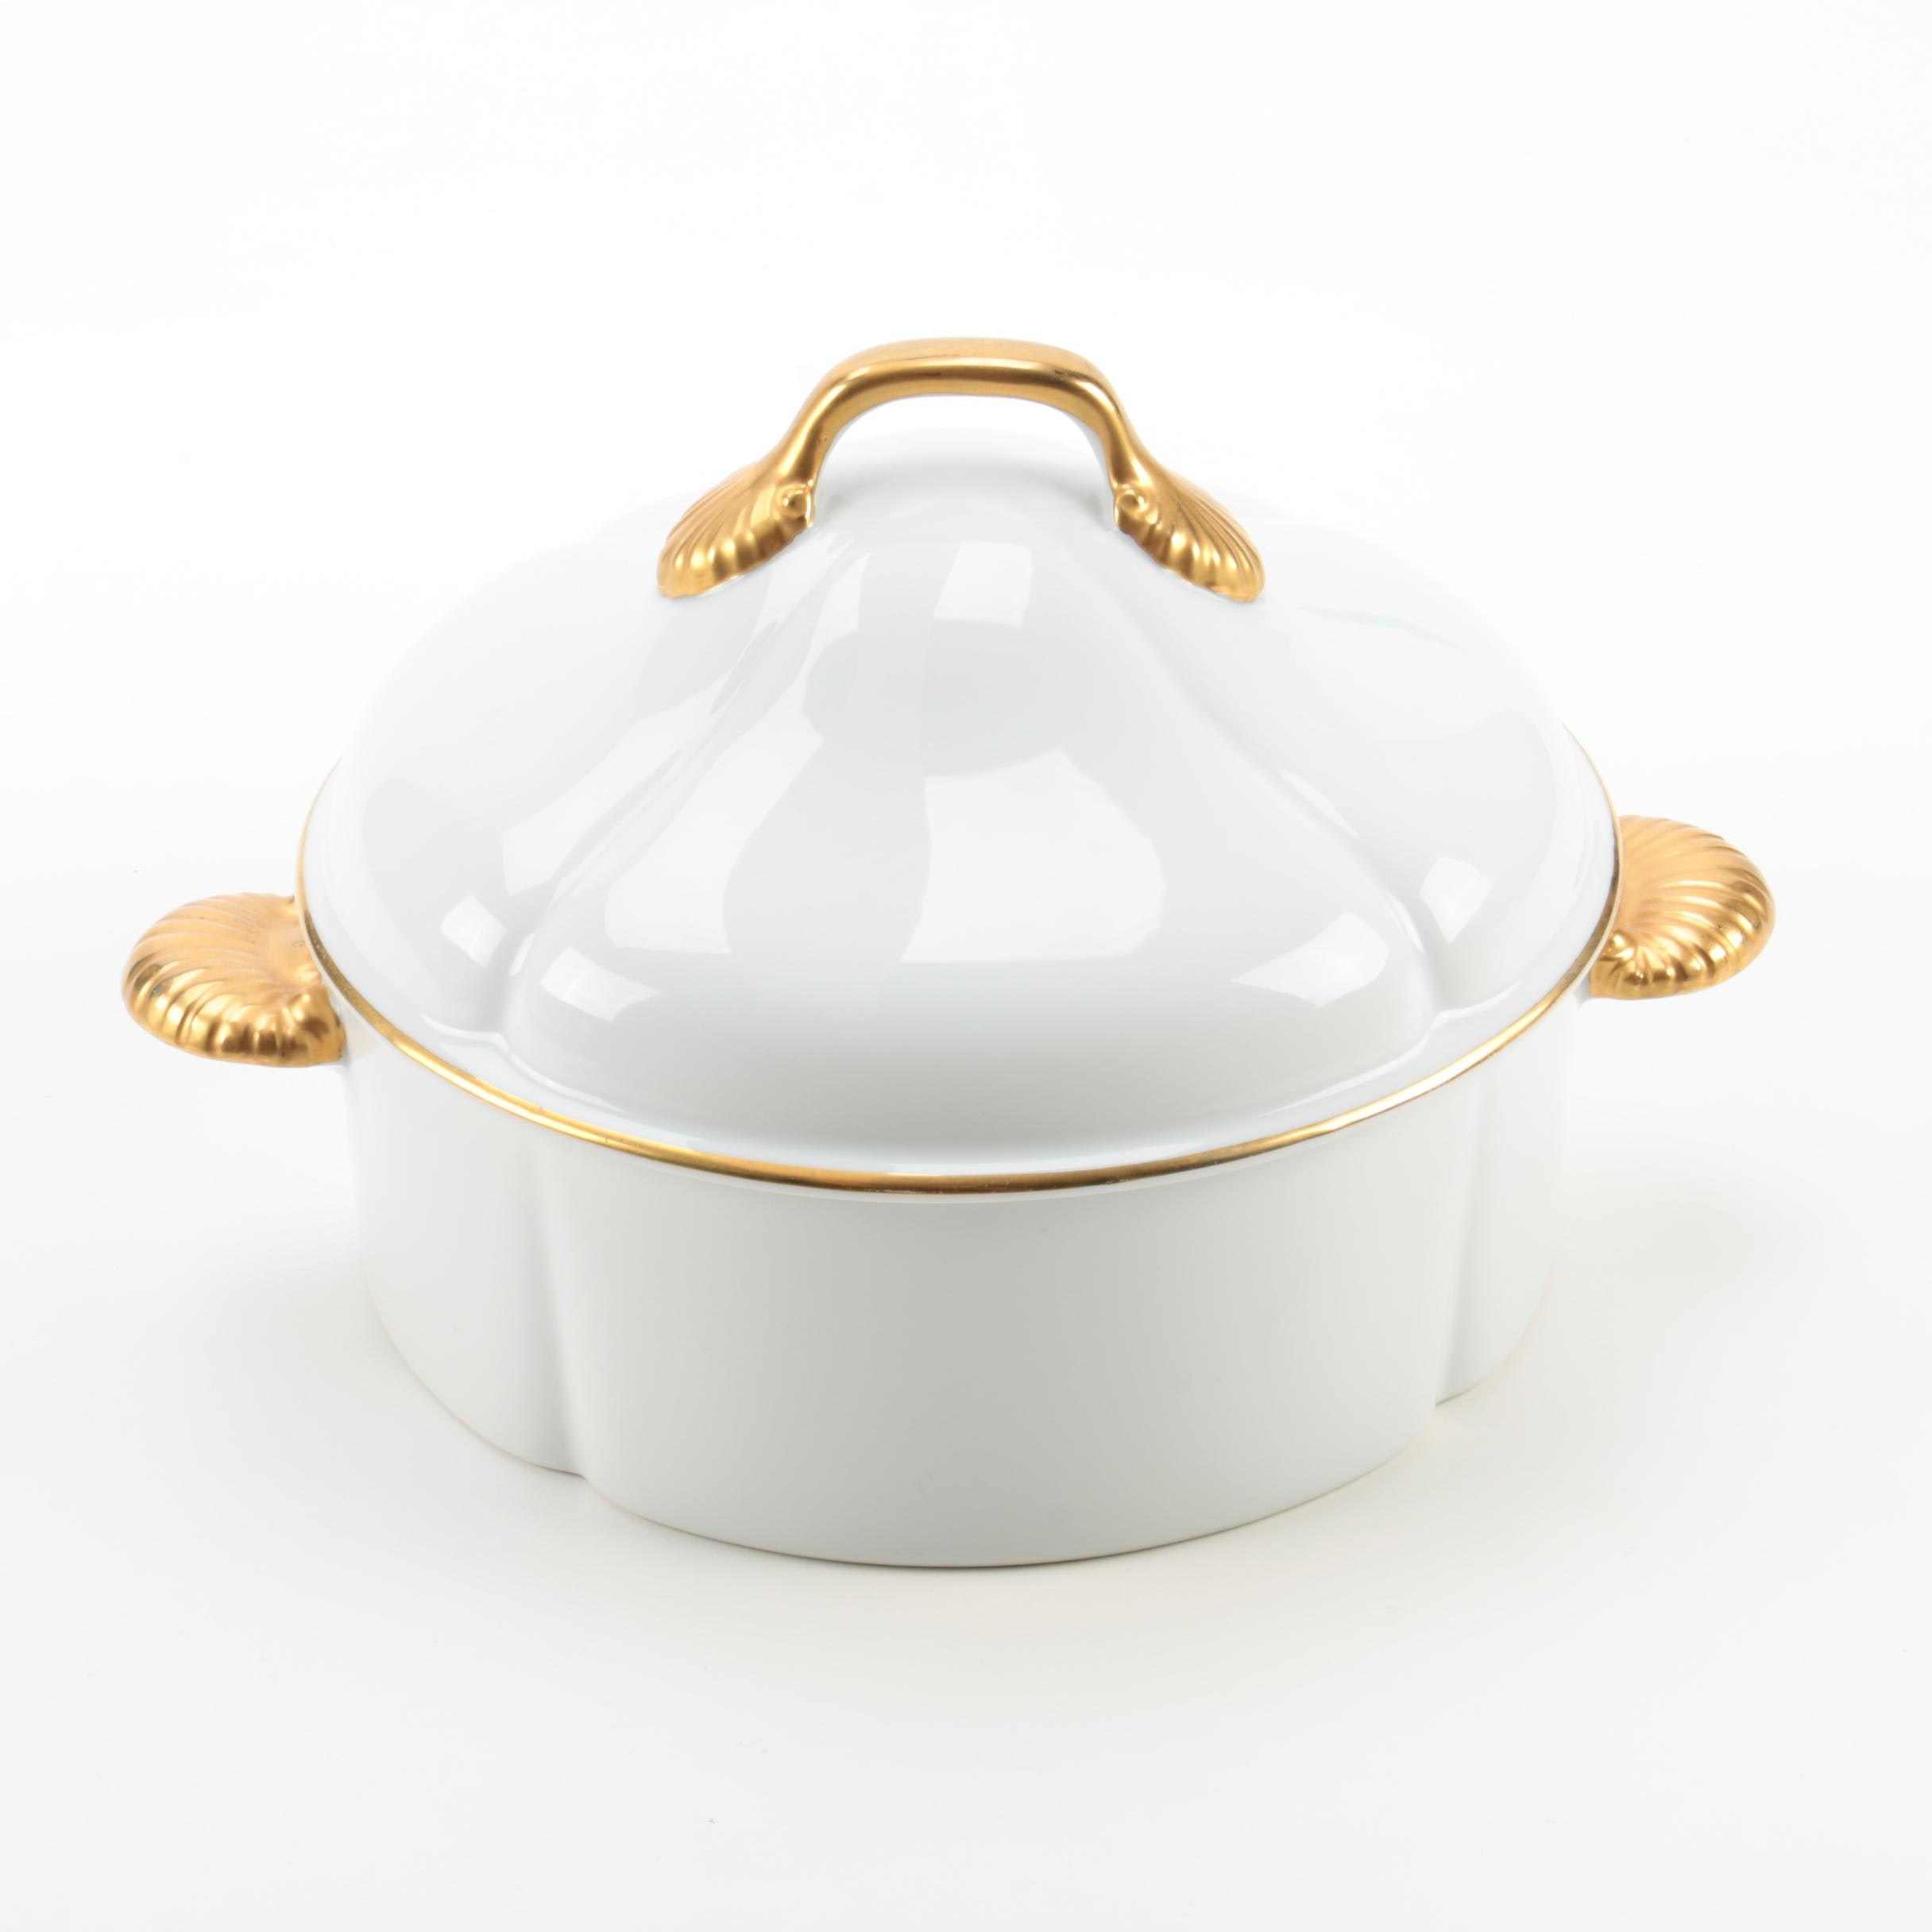 "Georges Briard ""Coquille D'Or Gold"" Covered Casserole Dish"